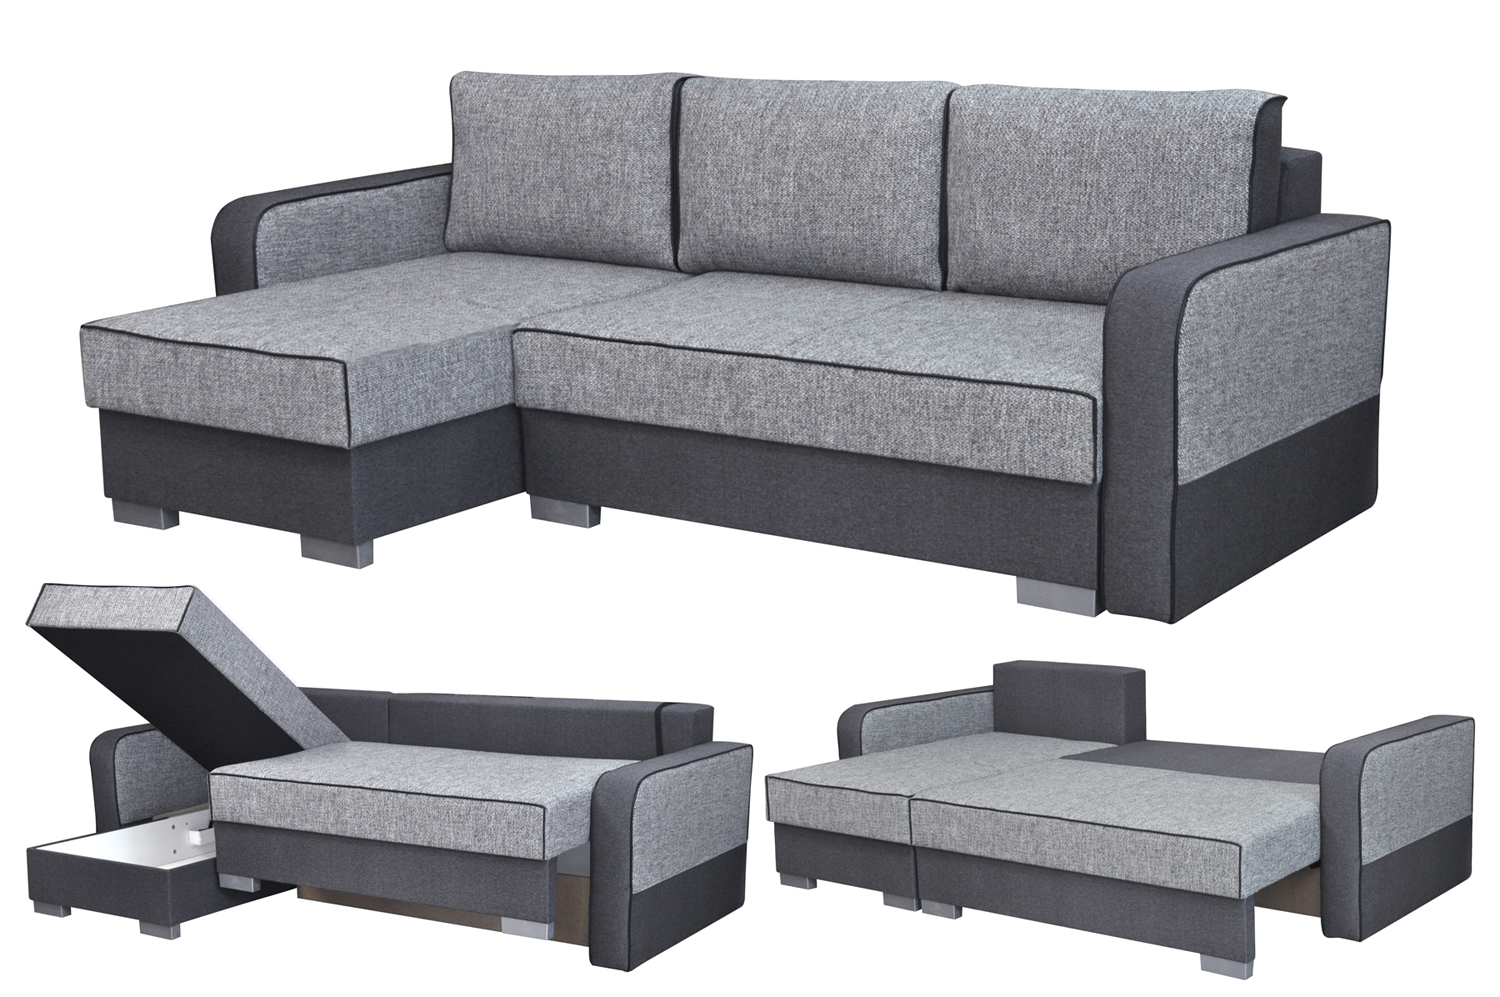 Five Corner Sofa Bed 485 Including Vat Instalments From 12 Months 0 Free Delivery